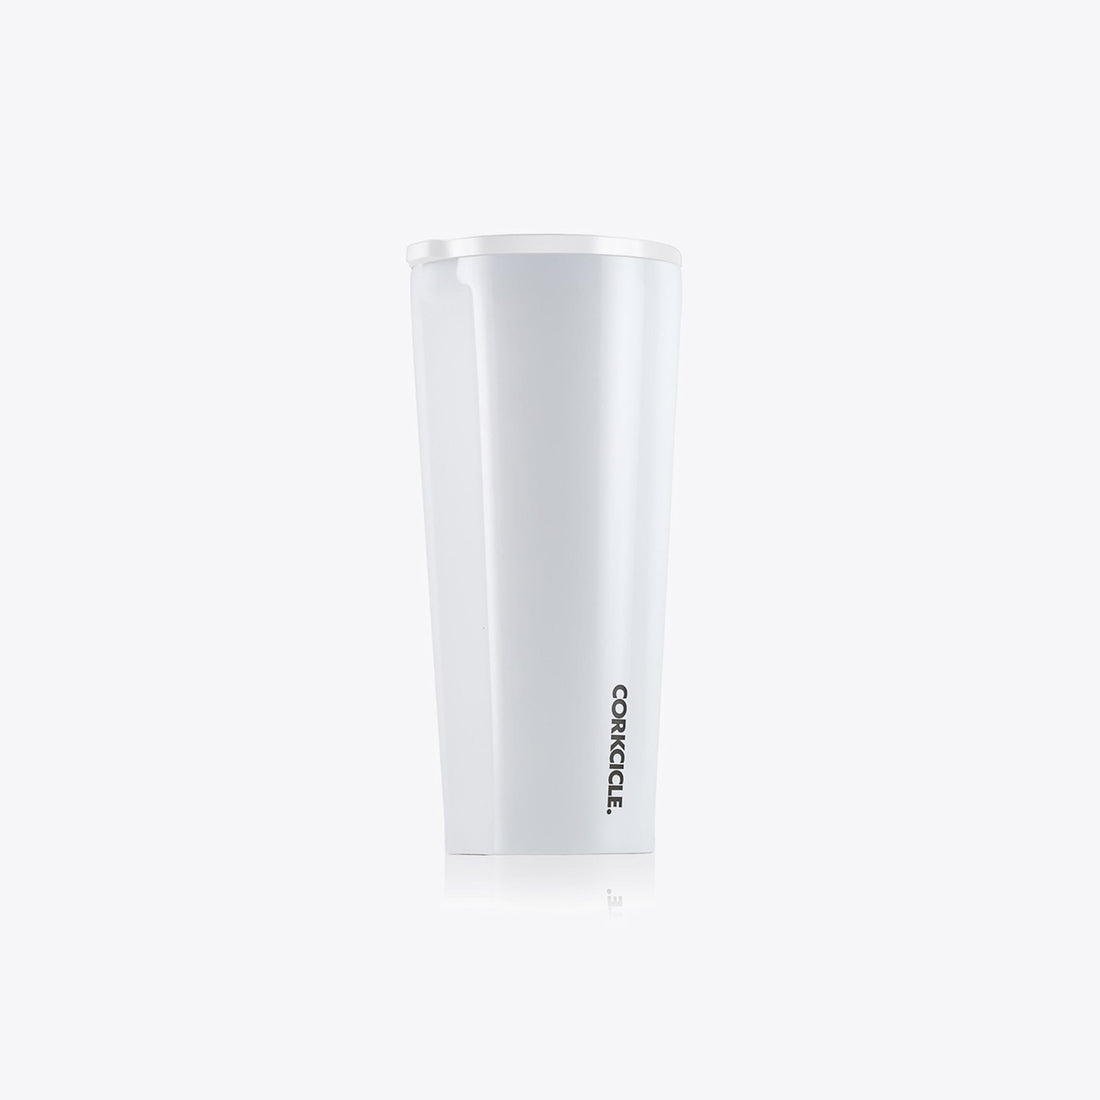 Corkcicle 24oz Dipped Tumbler White Corkcicle